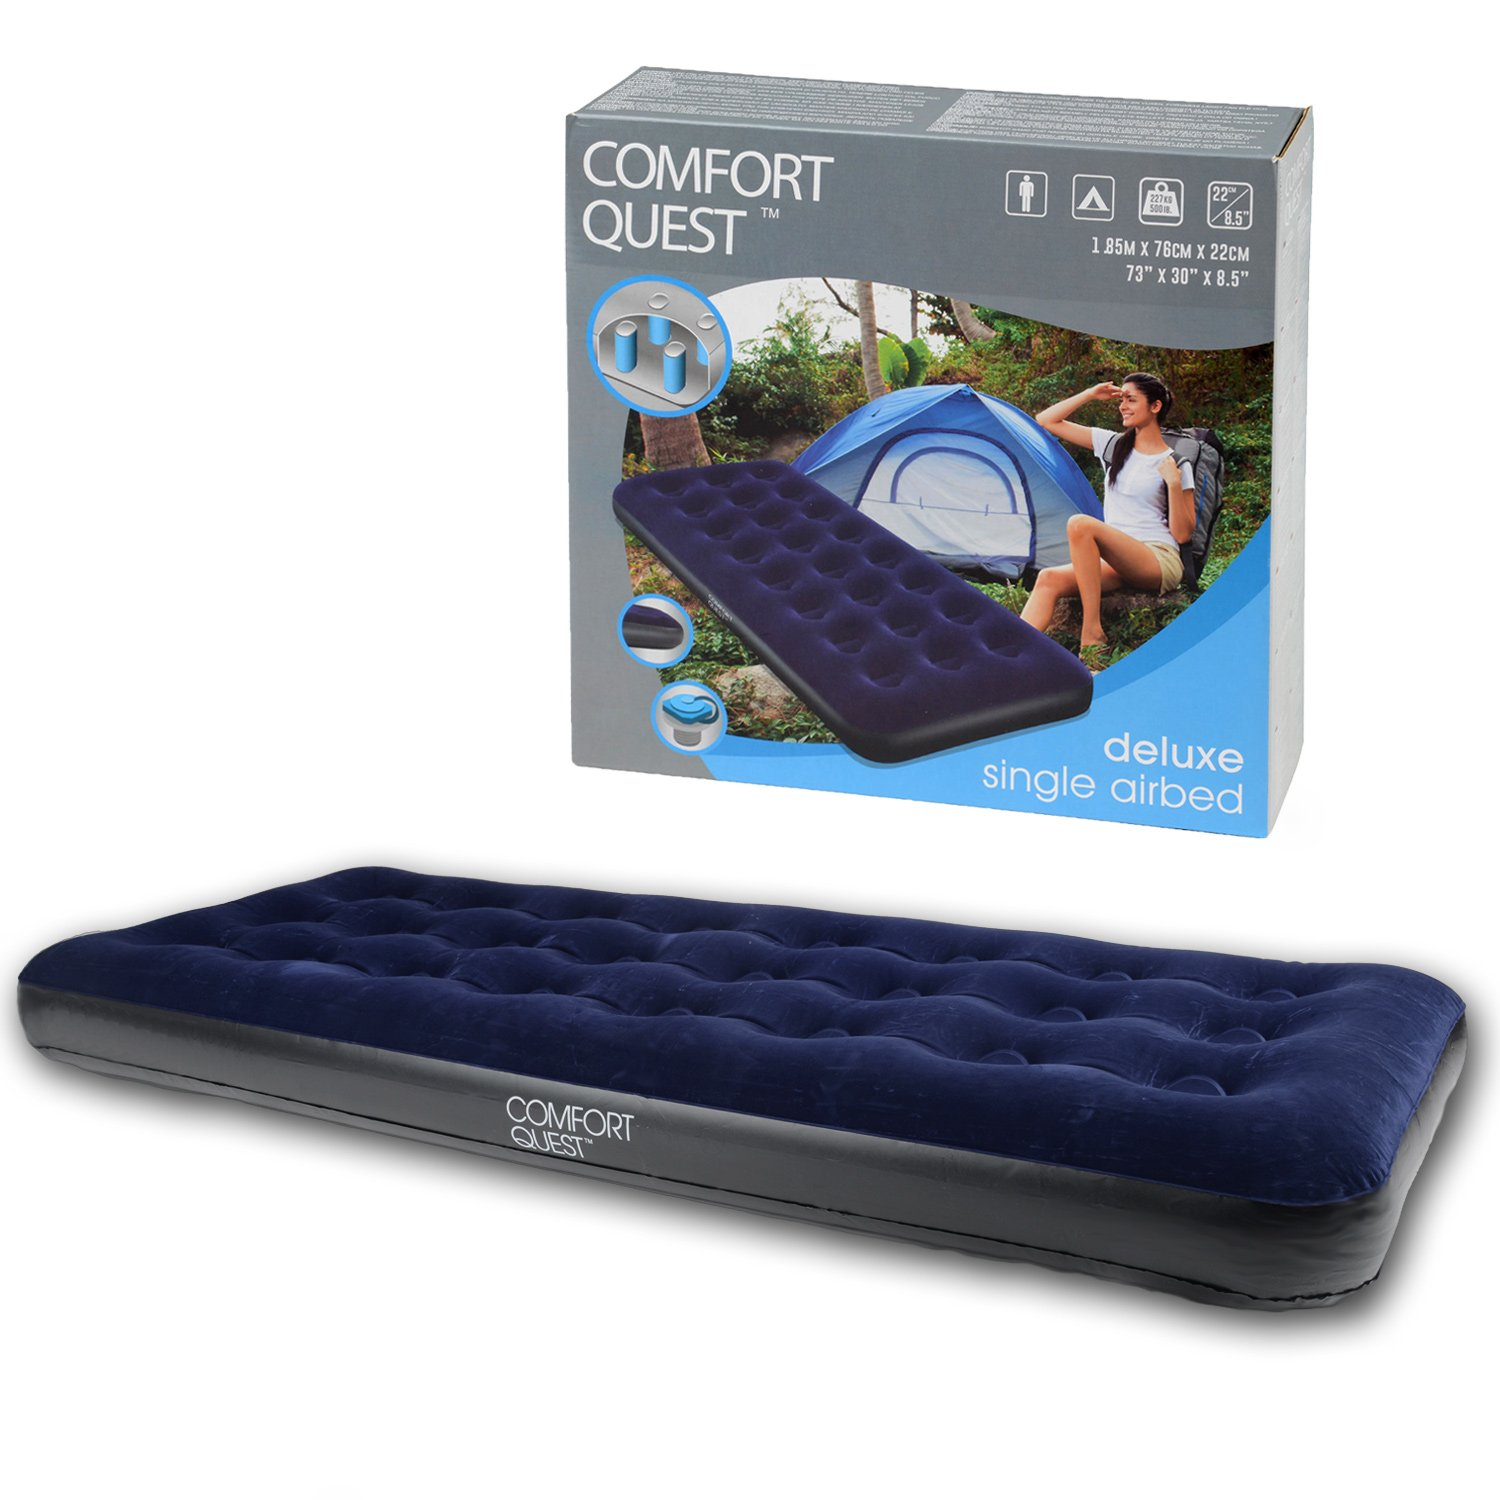 beds essential airbed tech electric size intex raised kit pump rest built with in bed queen inflatable fiber